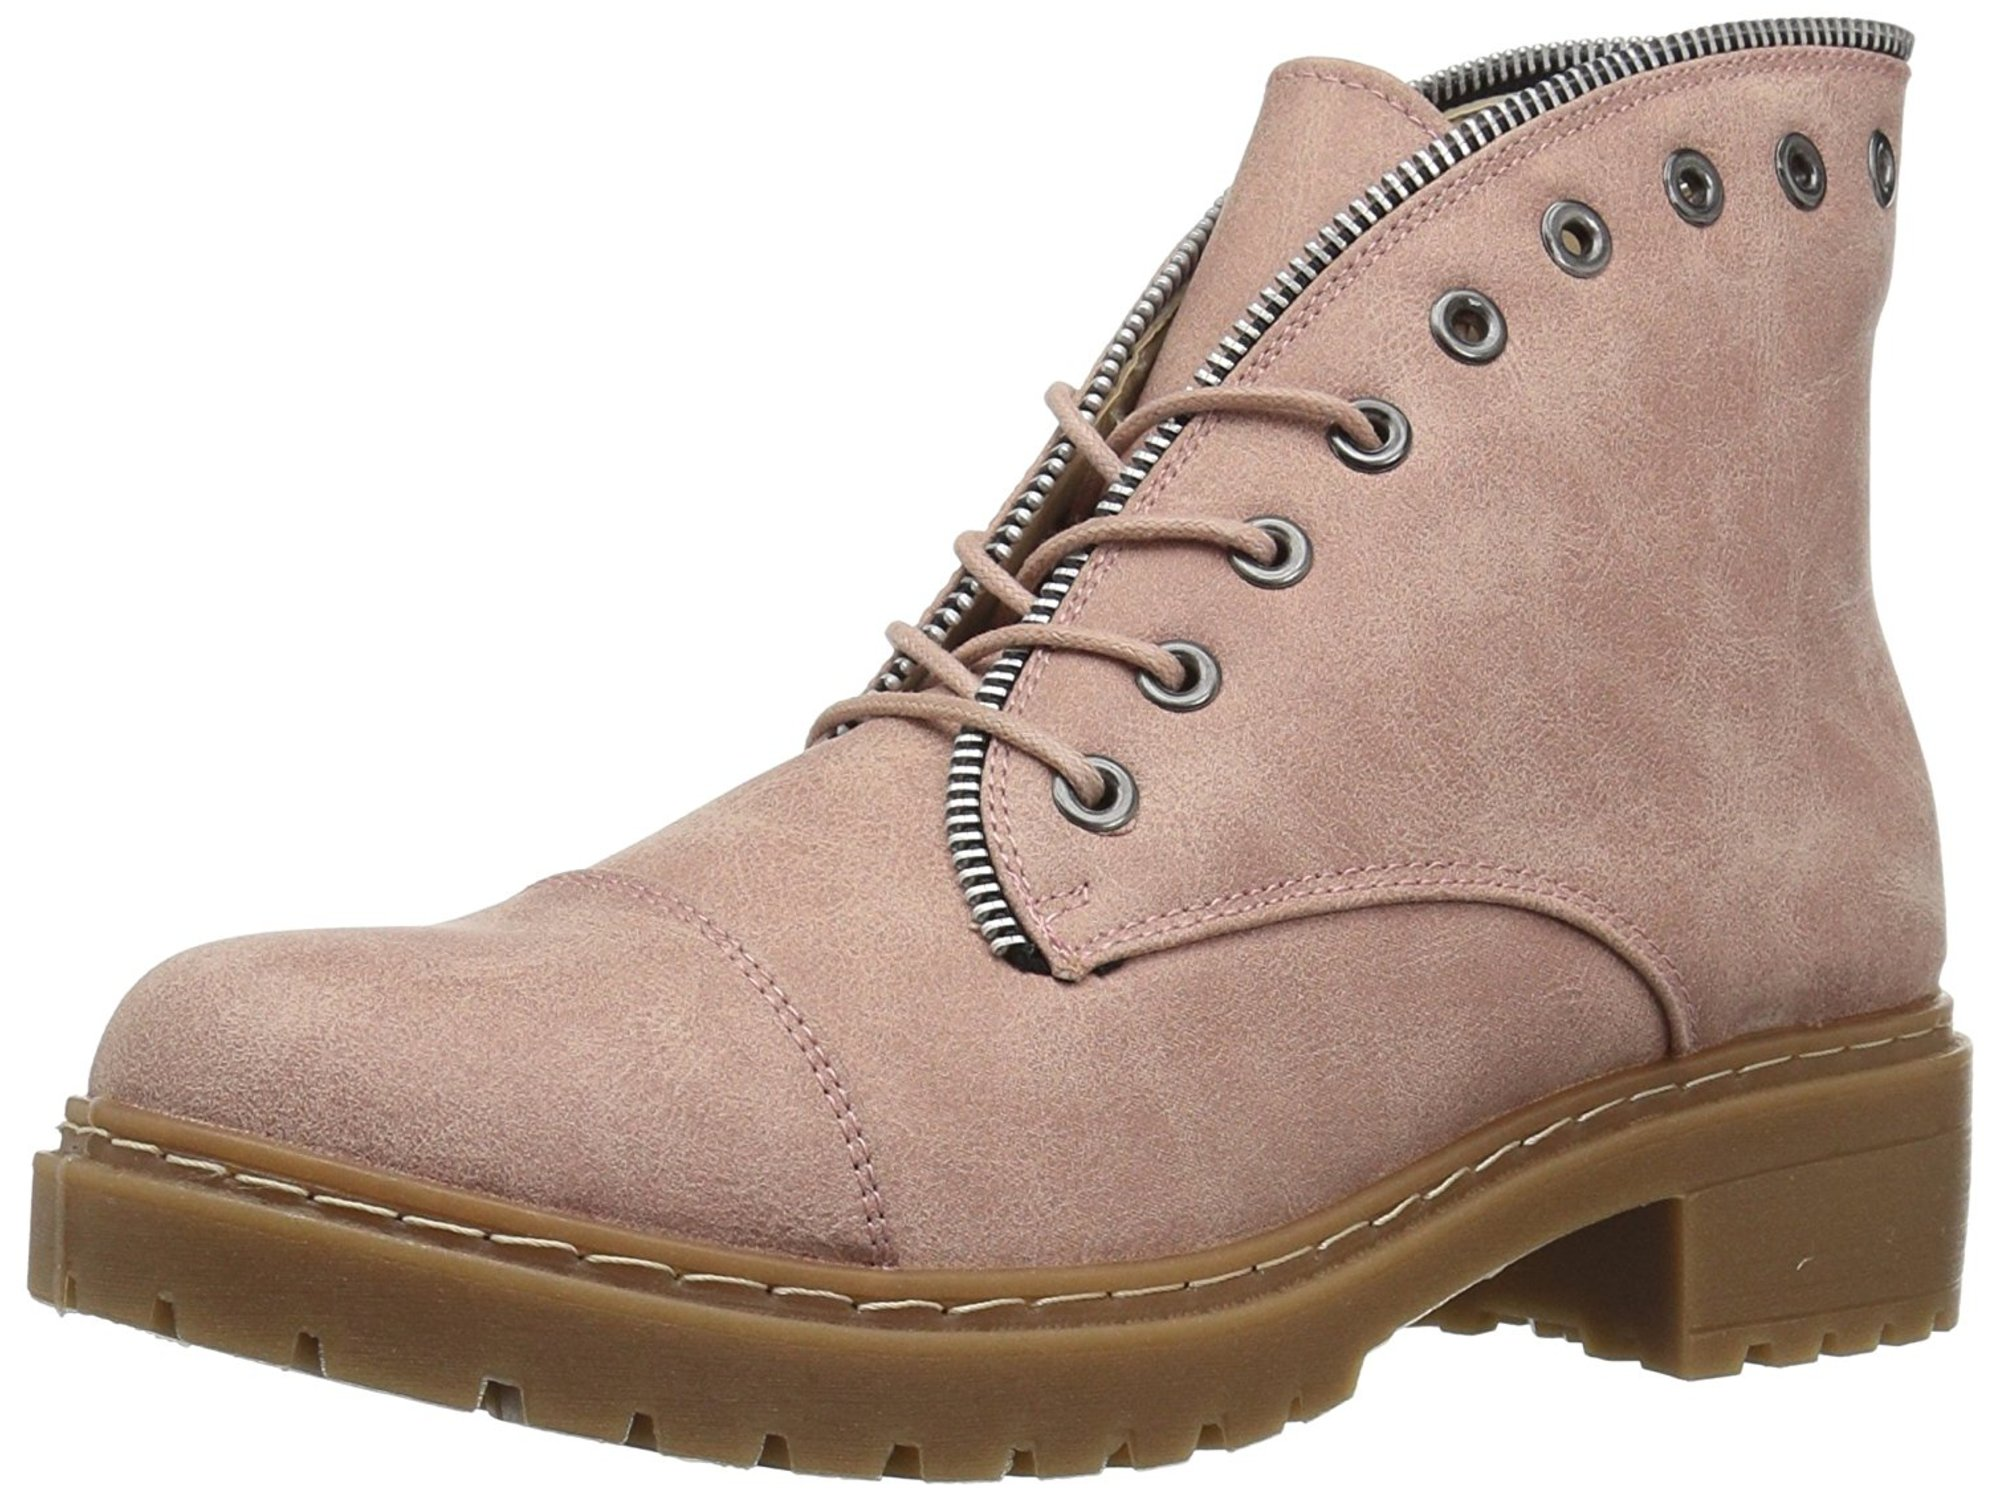 POSTAL-01A Qupid Women/'s Zip Lace Up Combat Boot Ankle Boots